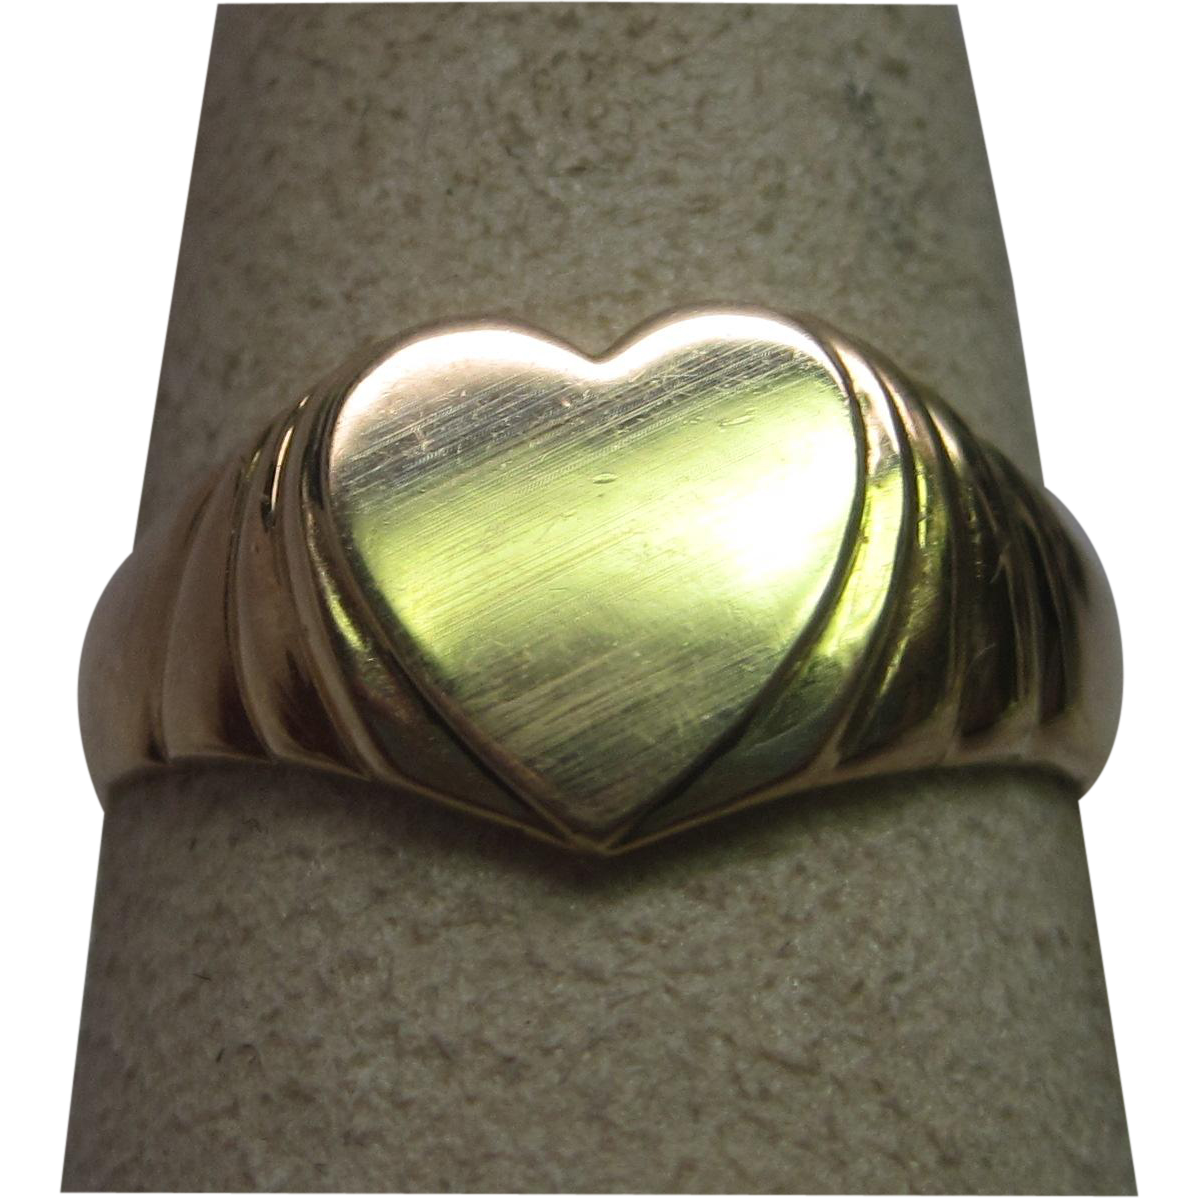 Child's Art Deco Heart Signet Ring in 14K Rose Gold